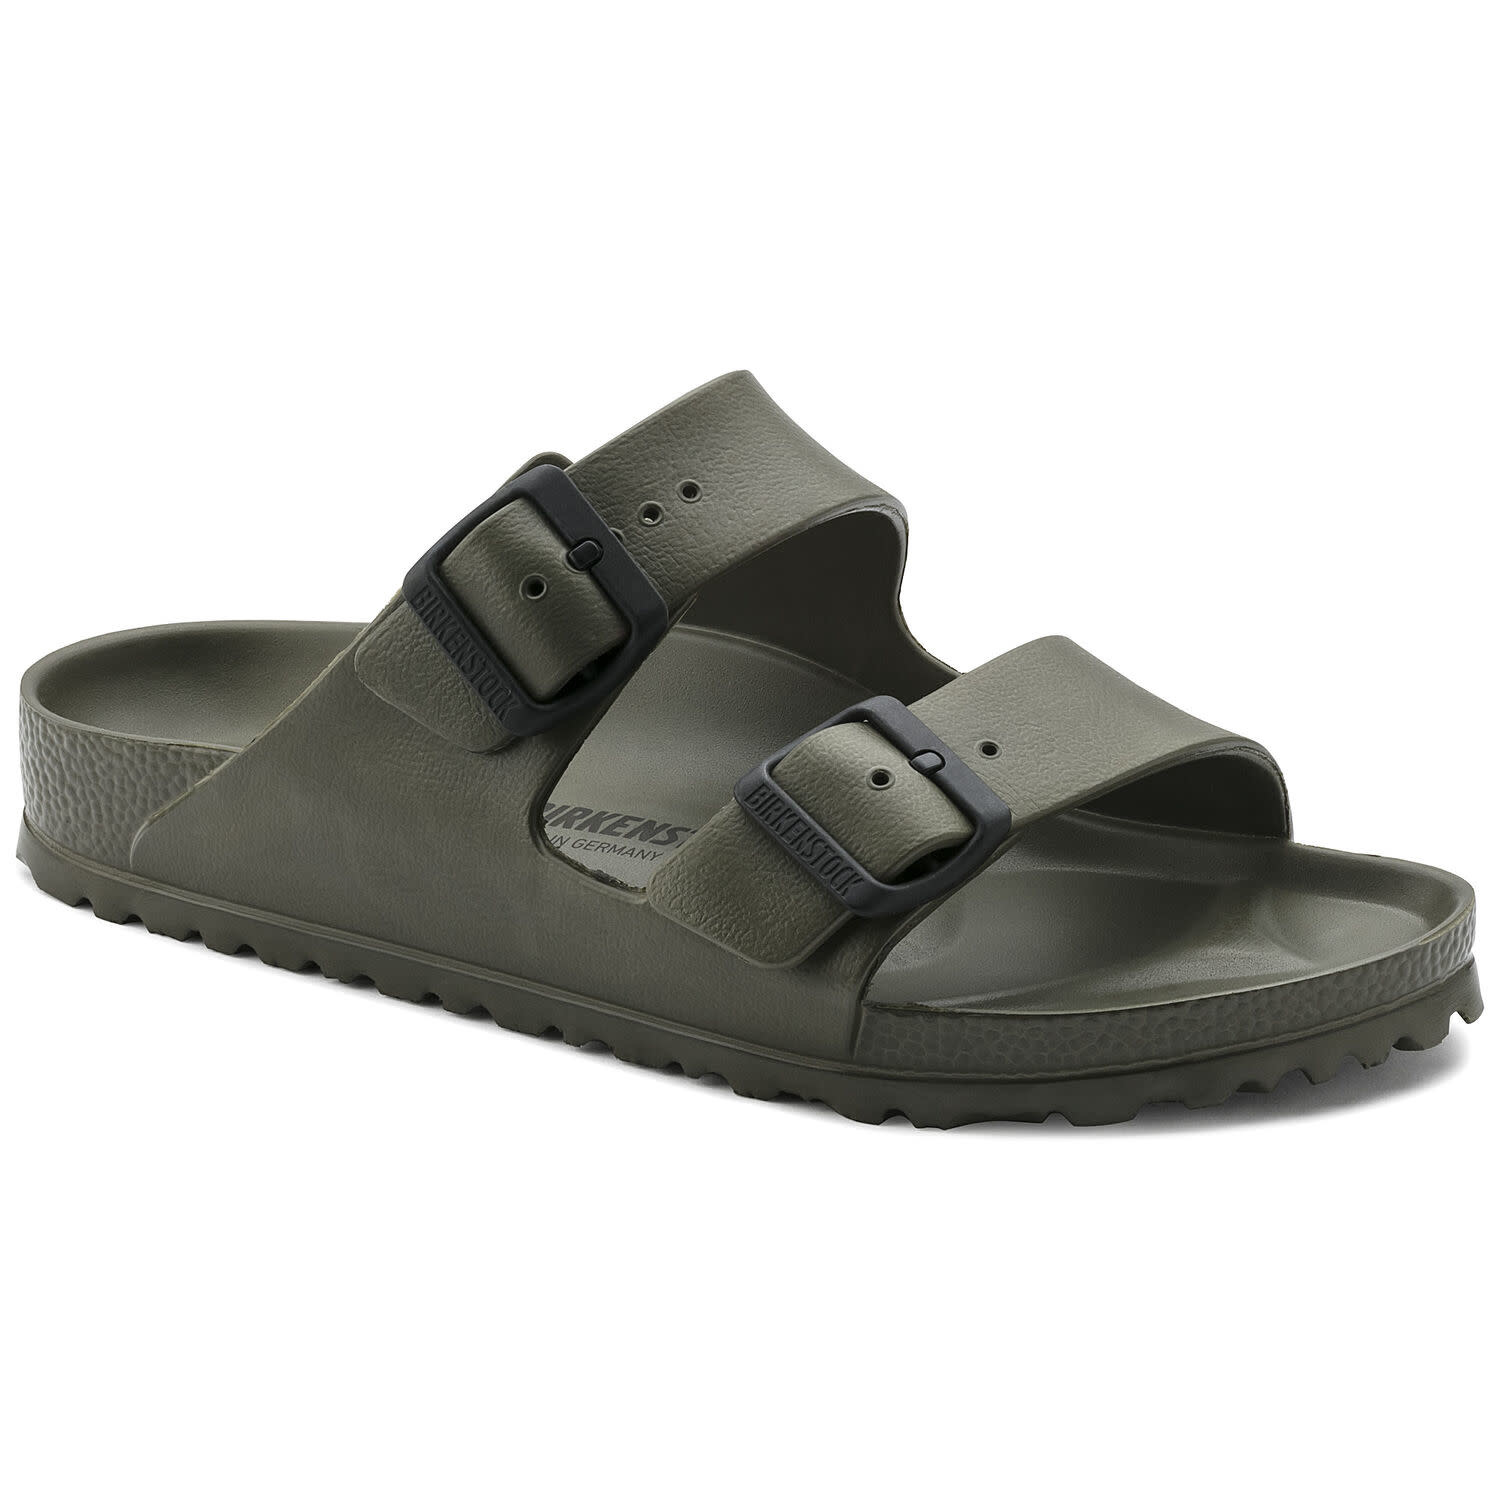 Birkenstock Birkenstock Arizona EVA (Women - Narrow) - Khaki